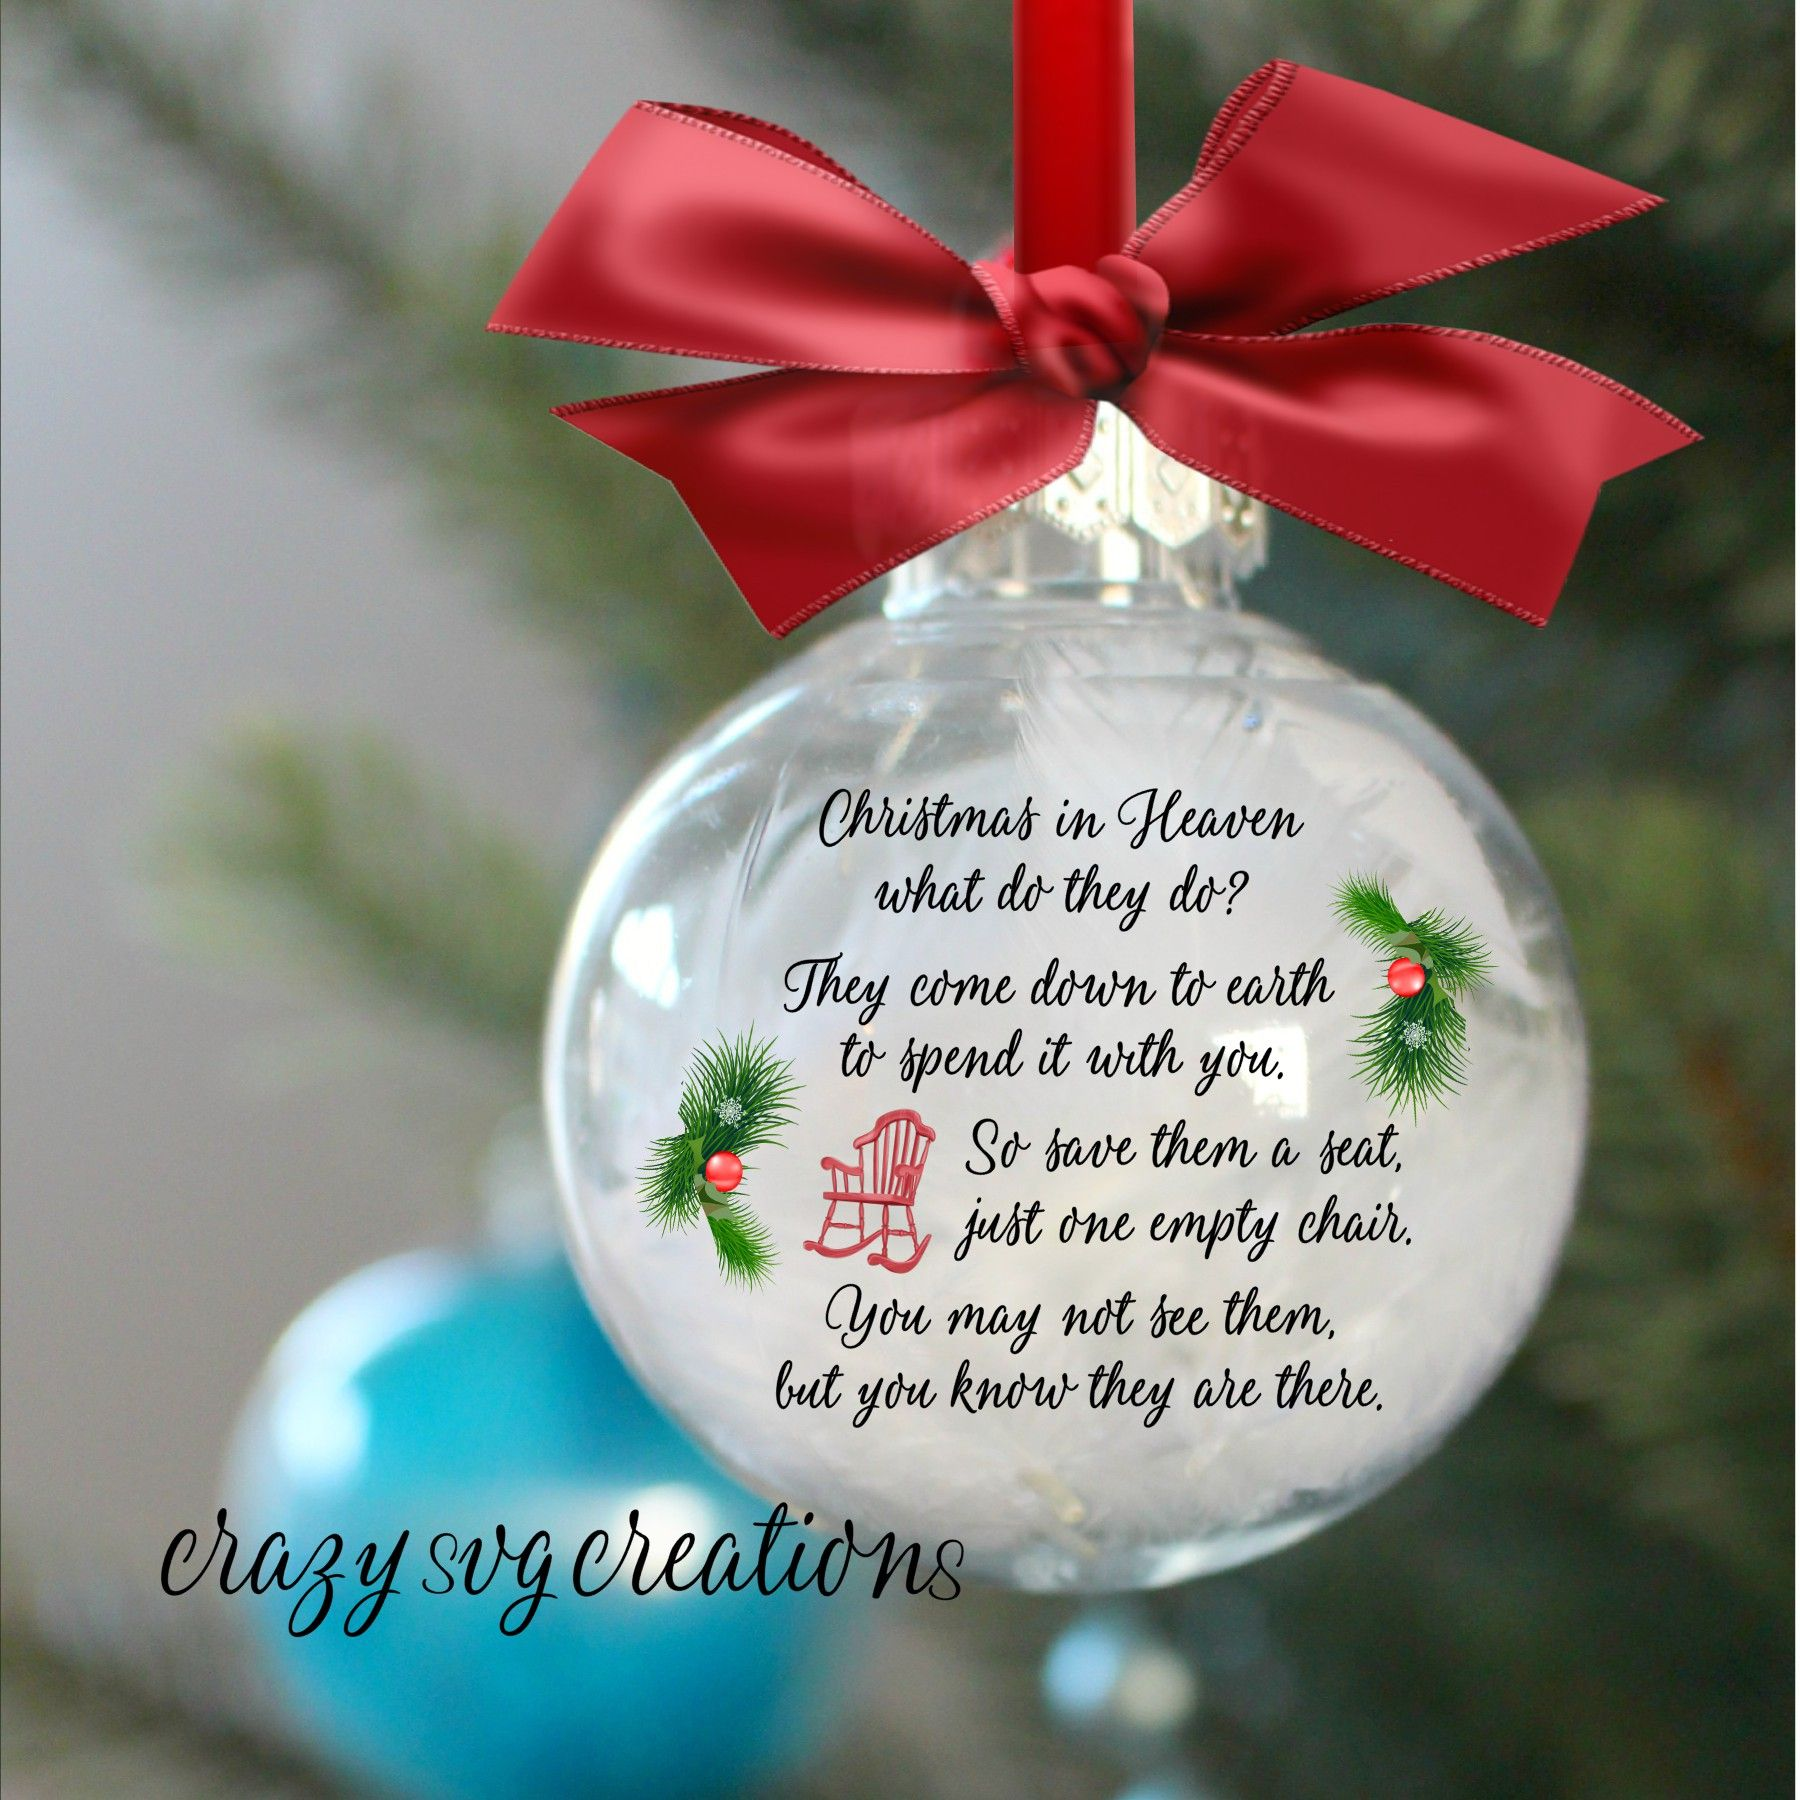 Christmas in Heaven ... little red chair poem   Christmas ...